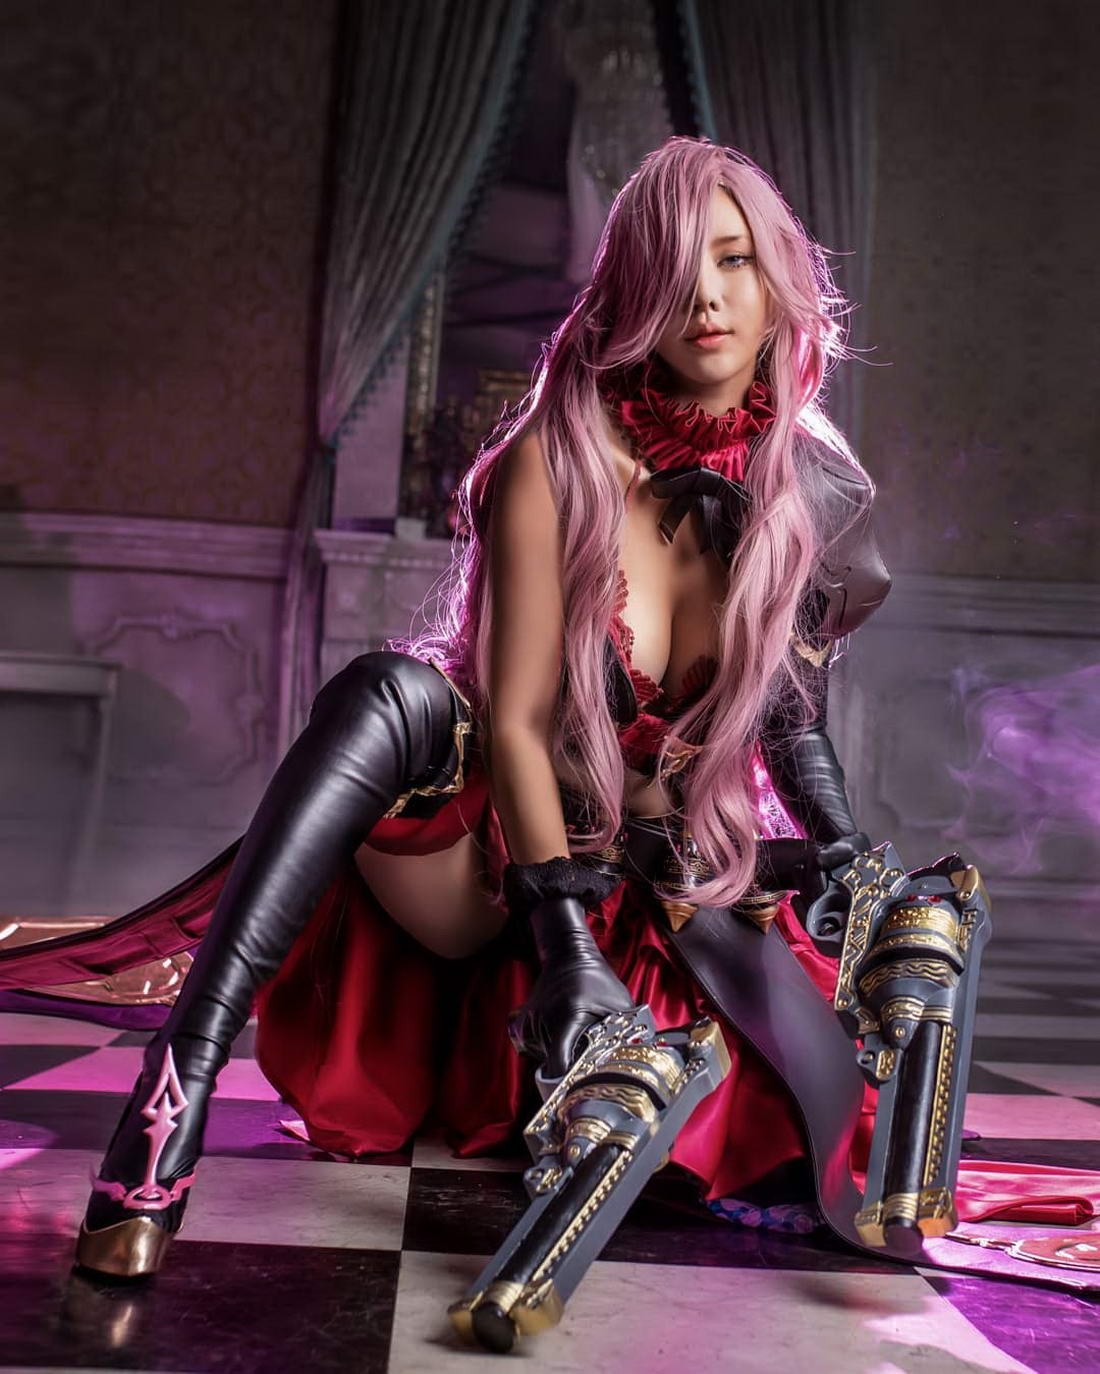 Hot Cosplay Girls Will Outshine Your Mind (45 Photos)